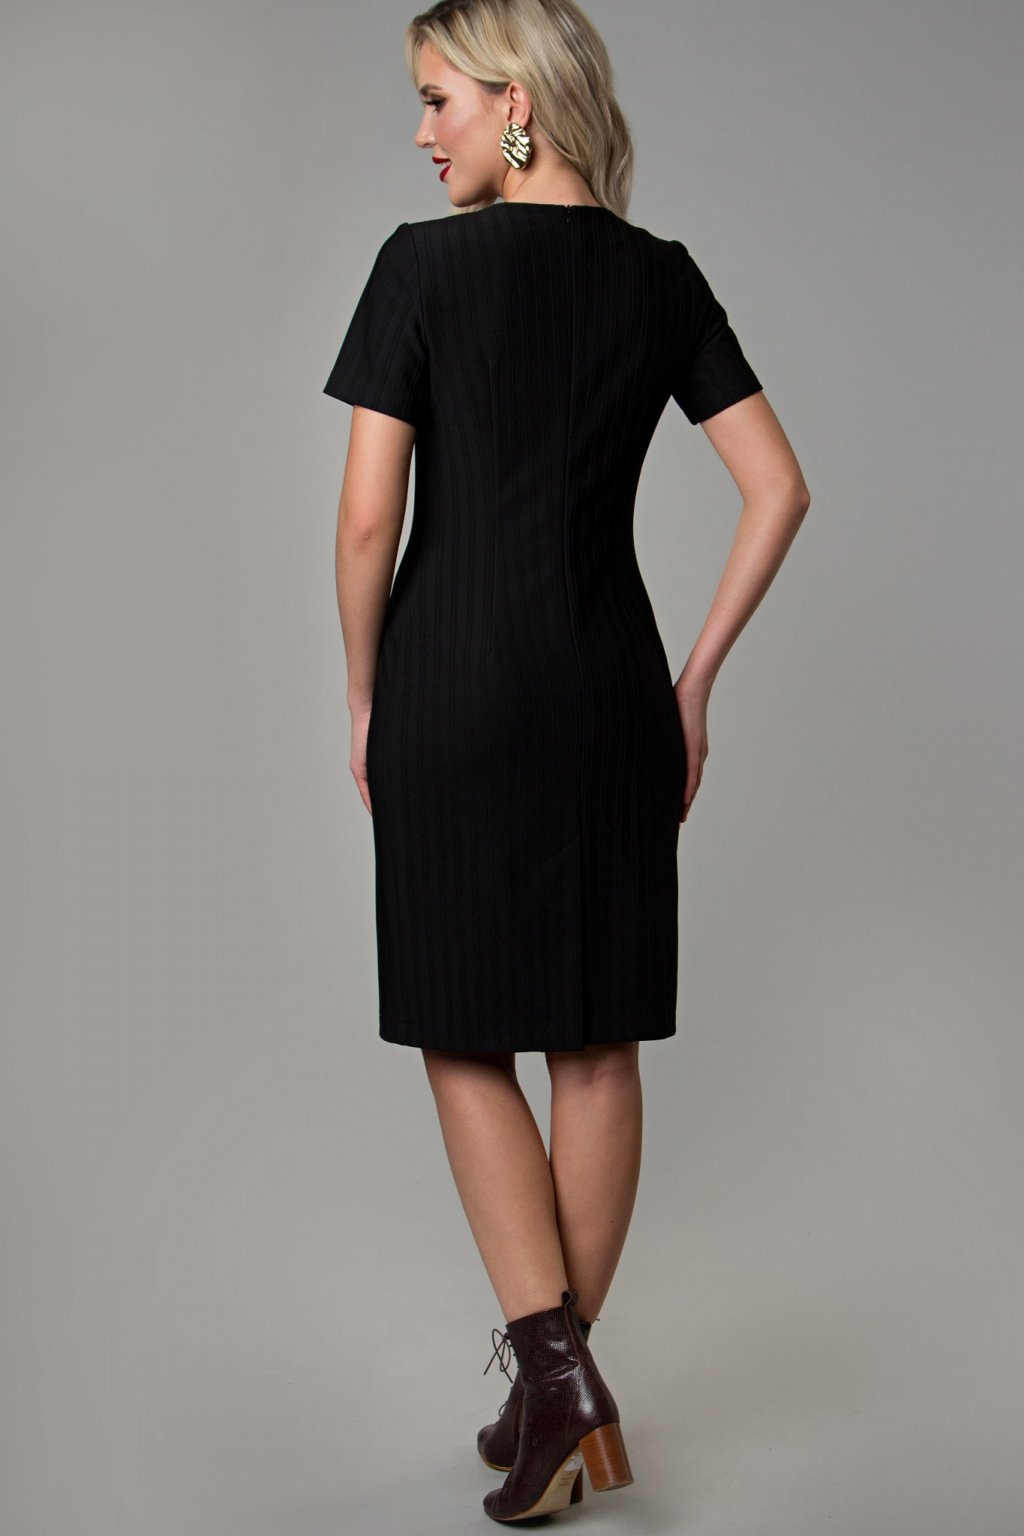 Платье Little black dress (П-244-1) - 3